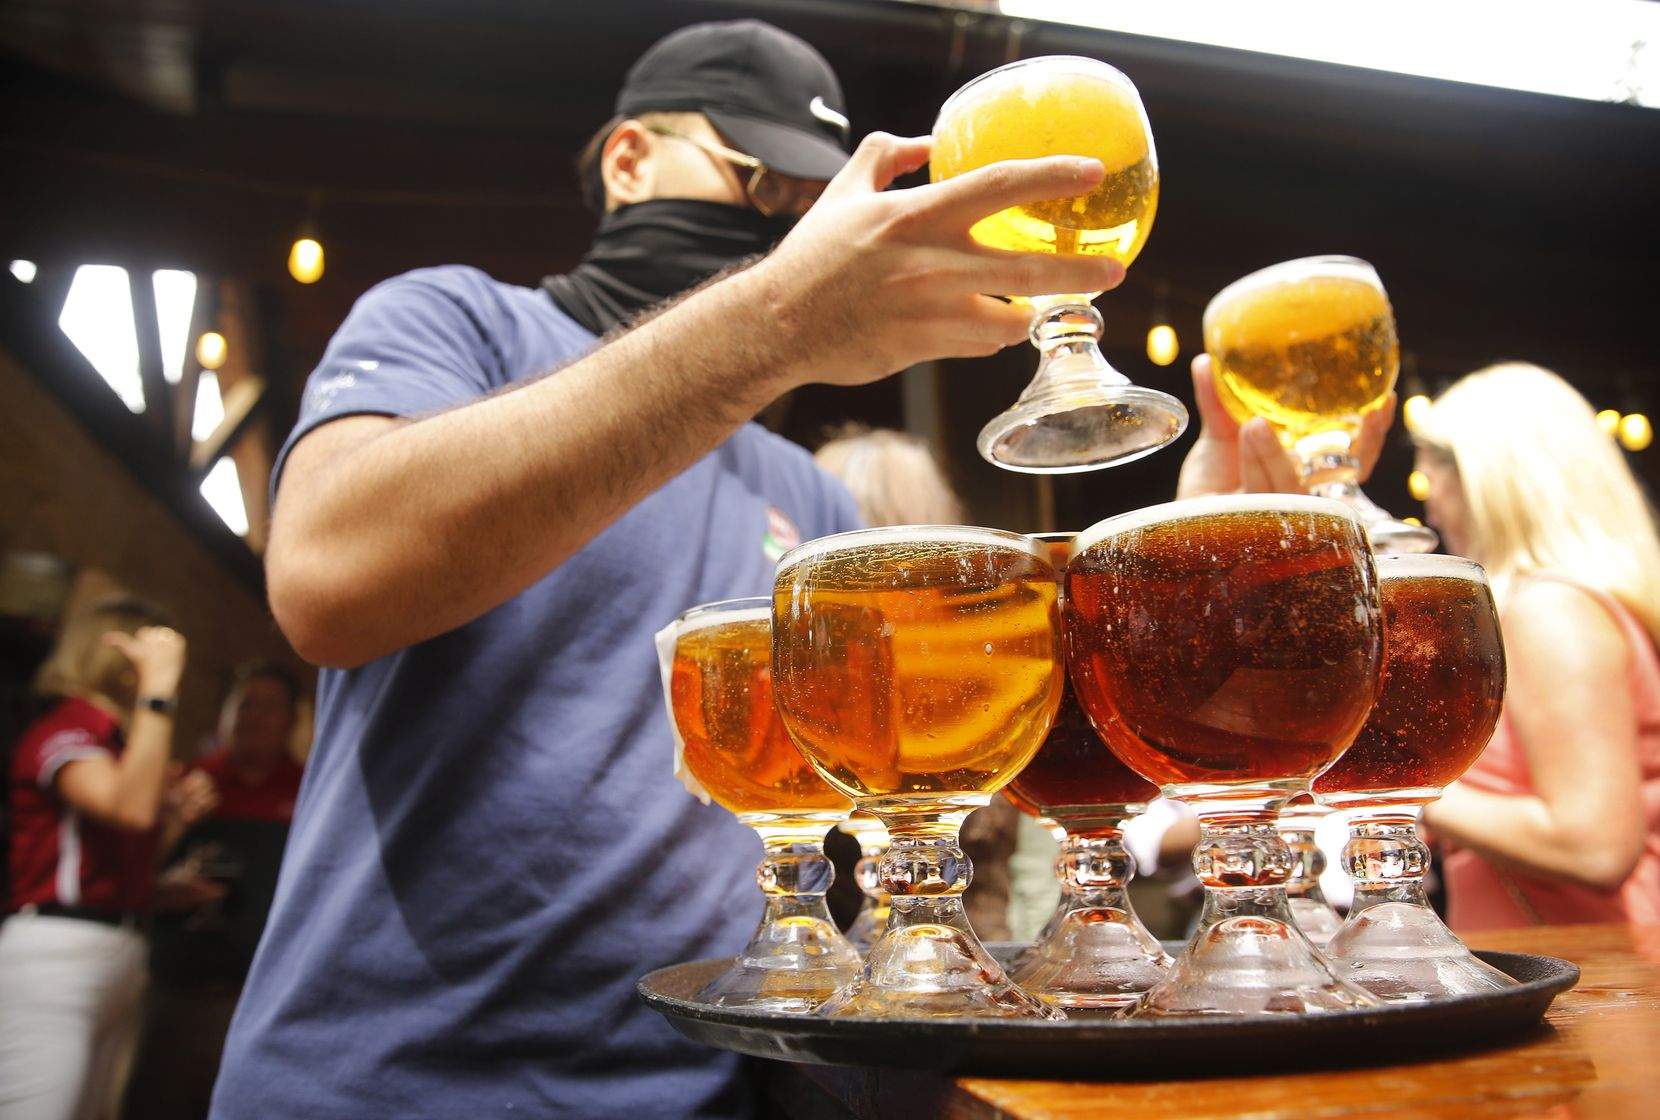 A stack of schooners filled with Yuengling Lager and Yuengling Flight are served at a ceremonial event celebrating Yuengling's move into at Katy Trail Ice House in Dallas.